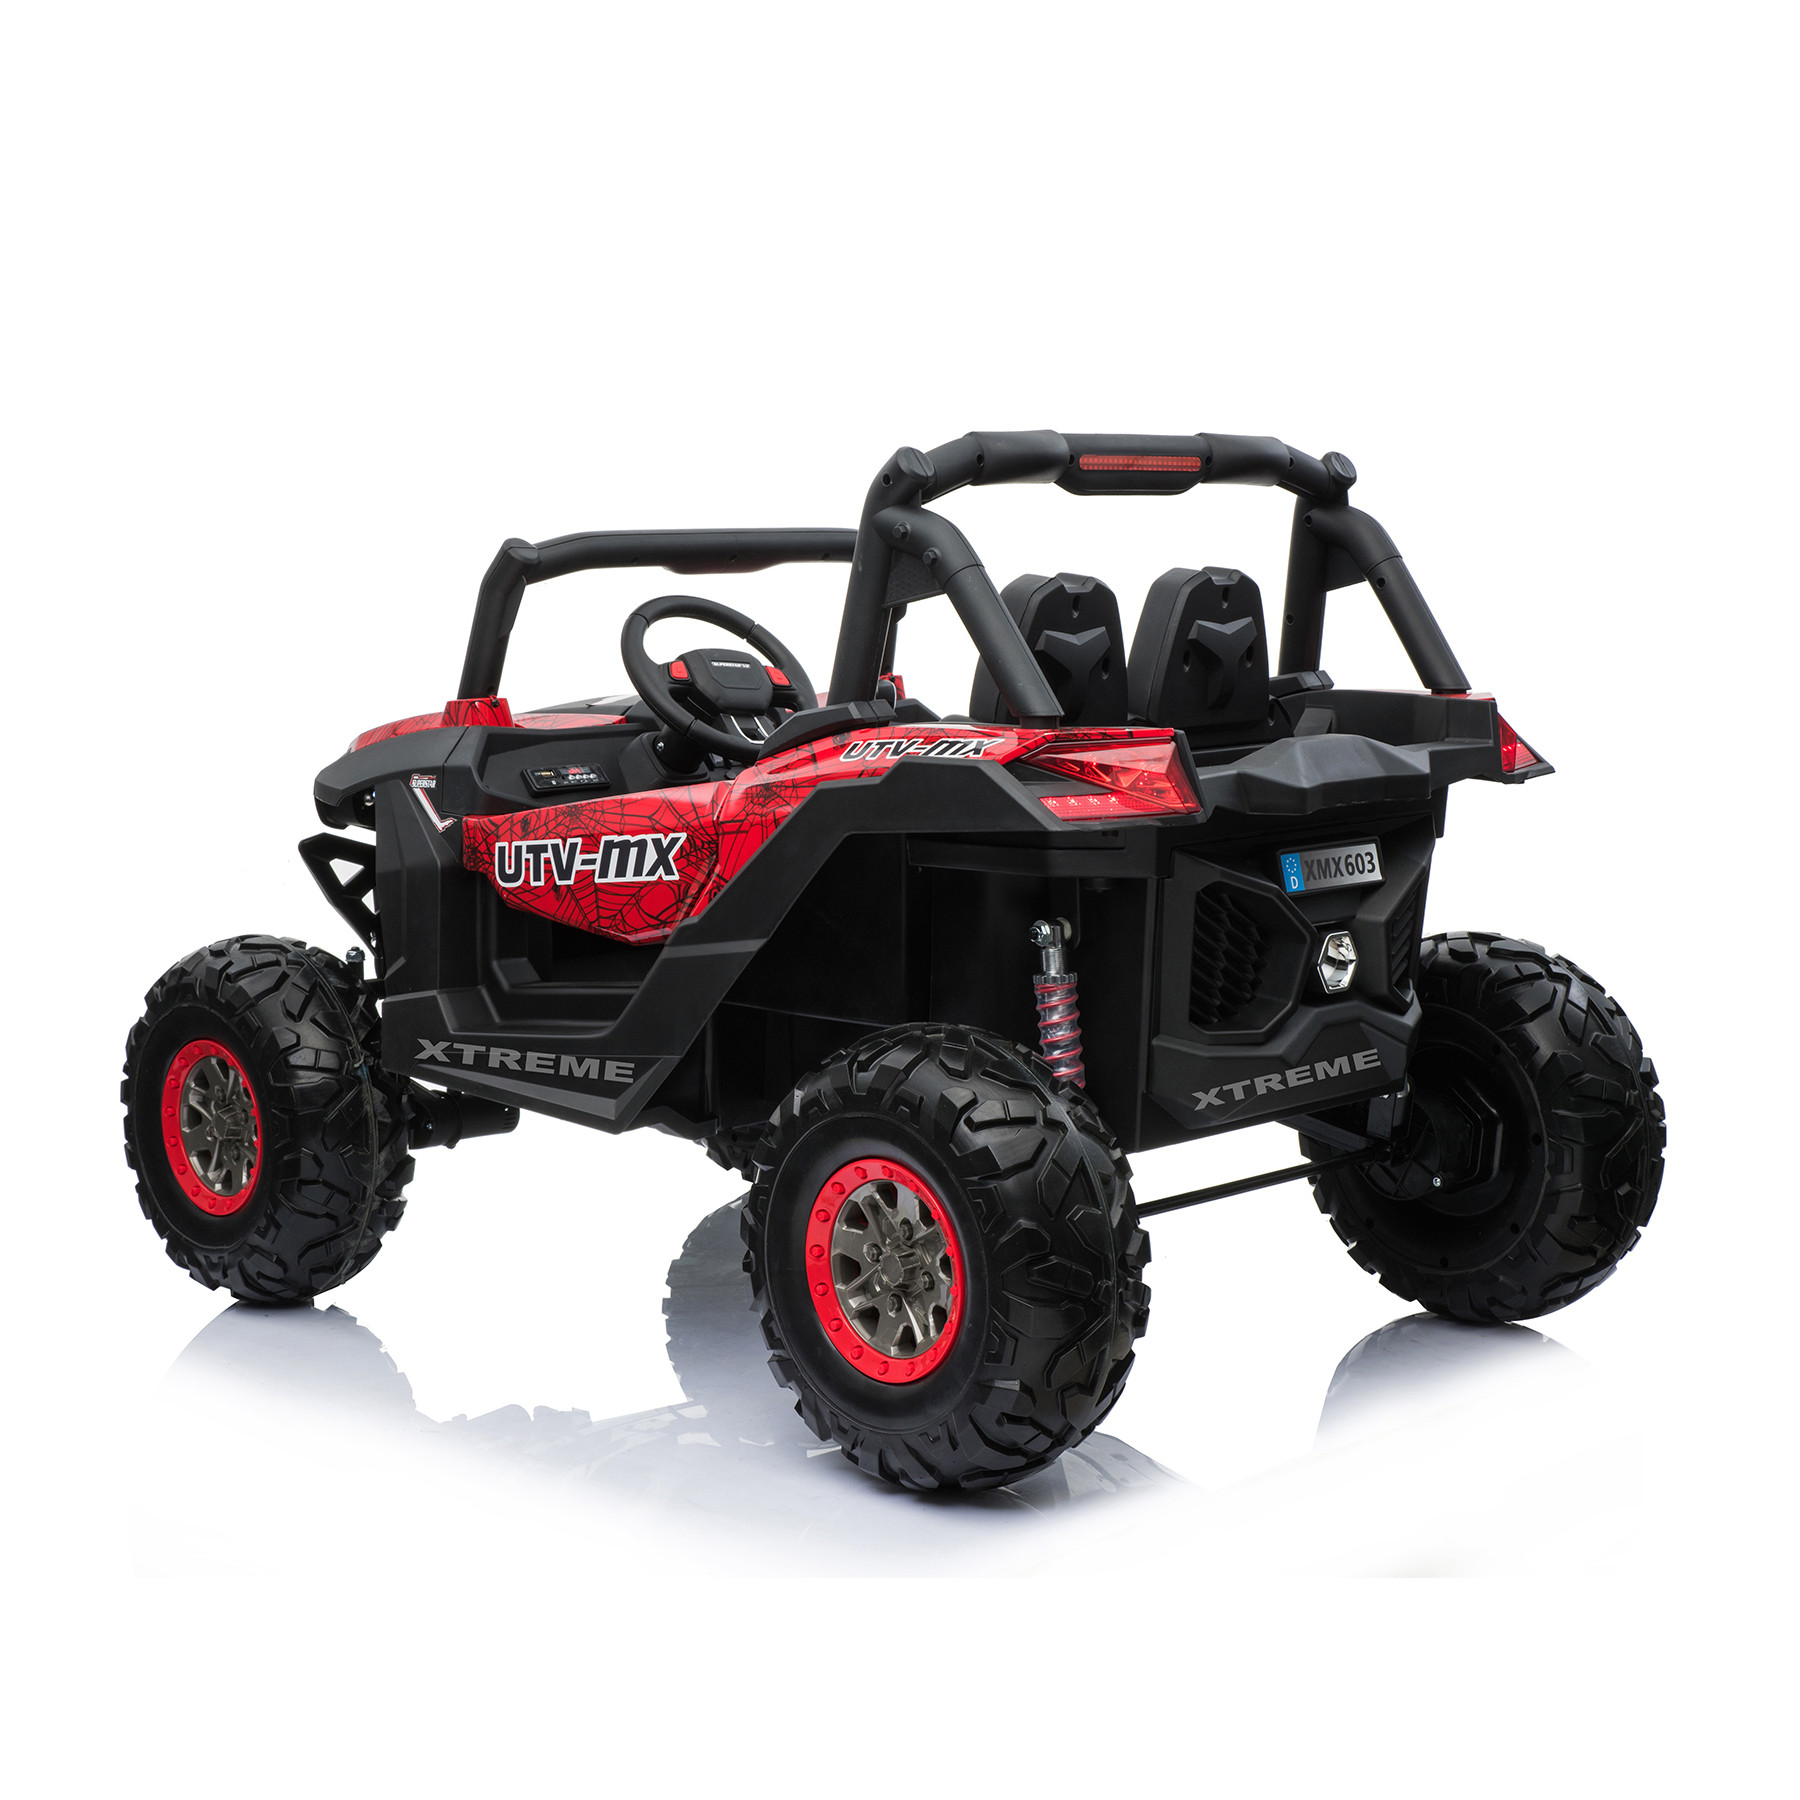 Xtreme 2018 BIG 24v Ride on 4x4 Jeep Spider Red